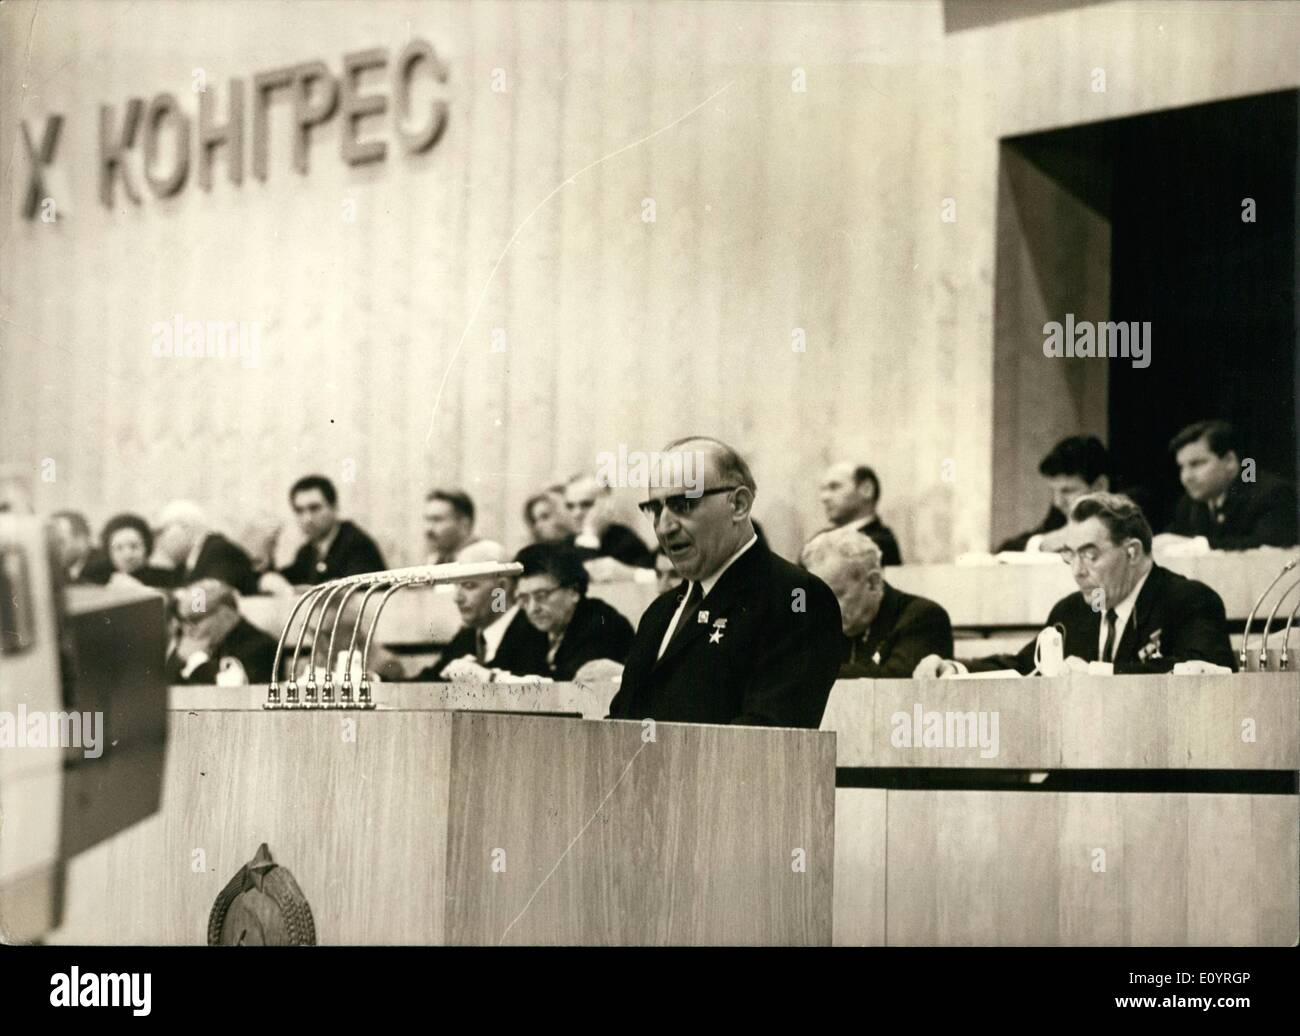 Apr. 04, 1971 - 10th Congress of the Bulgarian Communist Party. Todor Zhivkov, First Secretary of the CC of BCP and Bulgarian Prime Minister, speaking. At right is Leonid Brezhnev, Secretary General of the CC of the CPSU. Sofia April 1971 - Stock Image